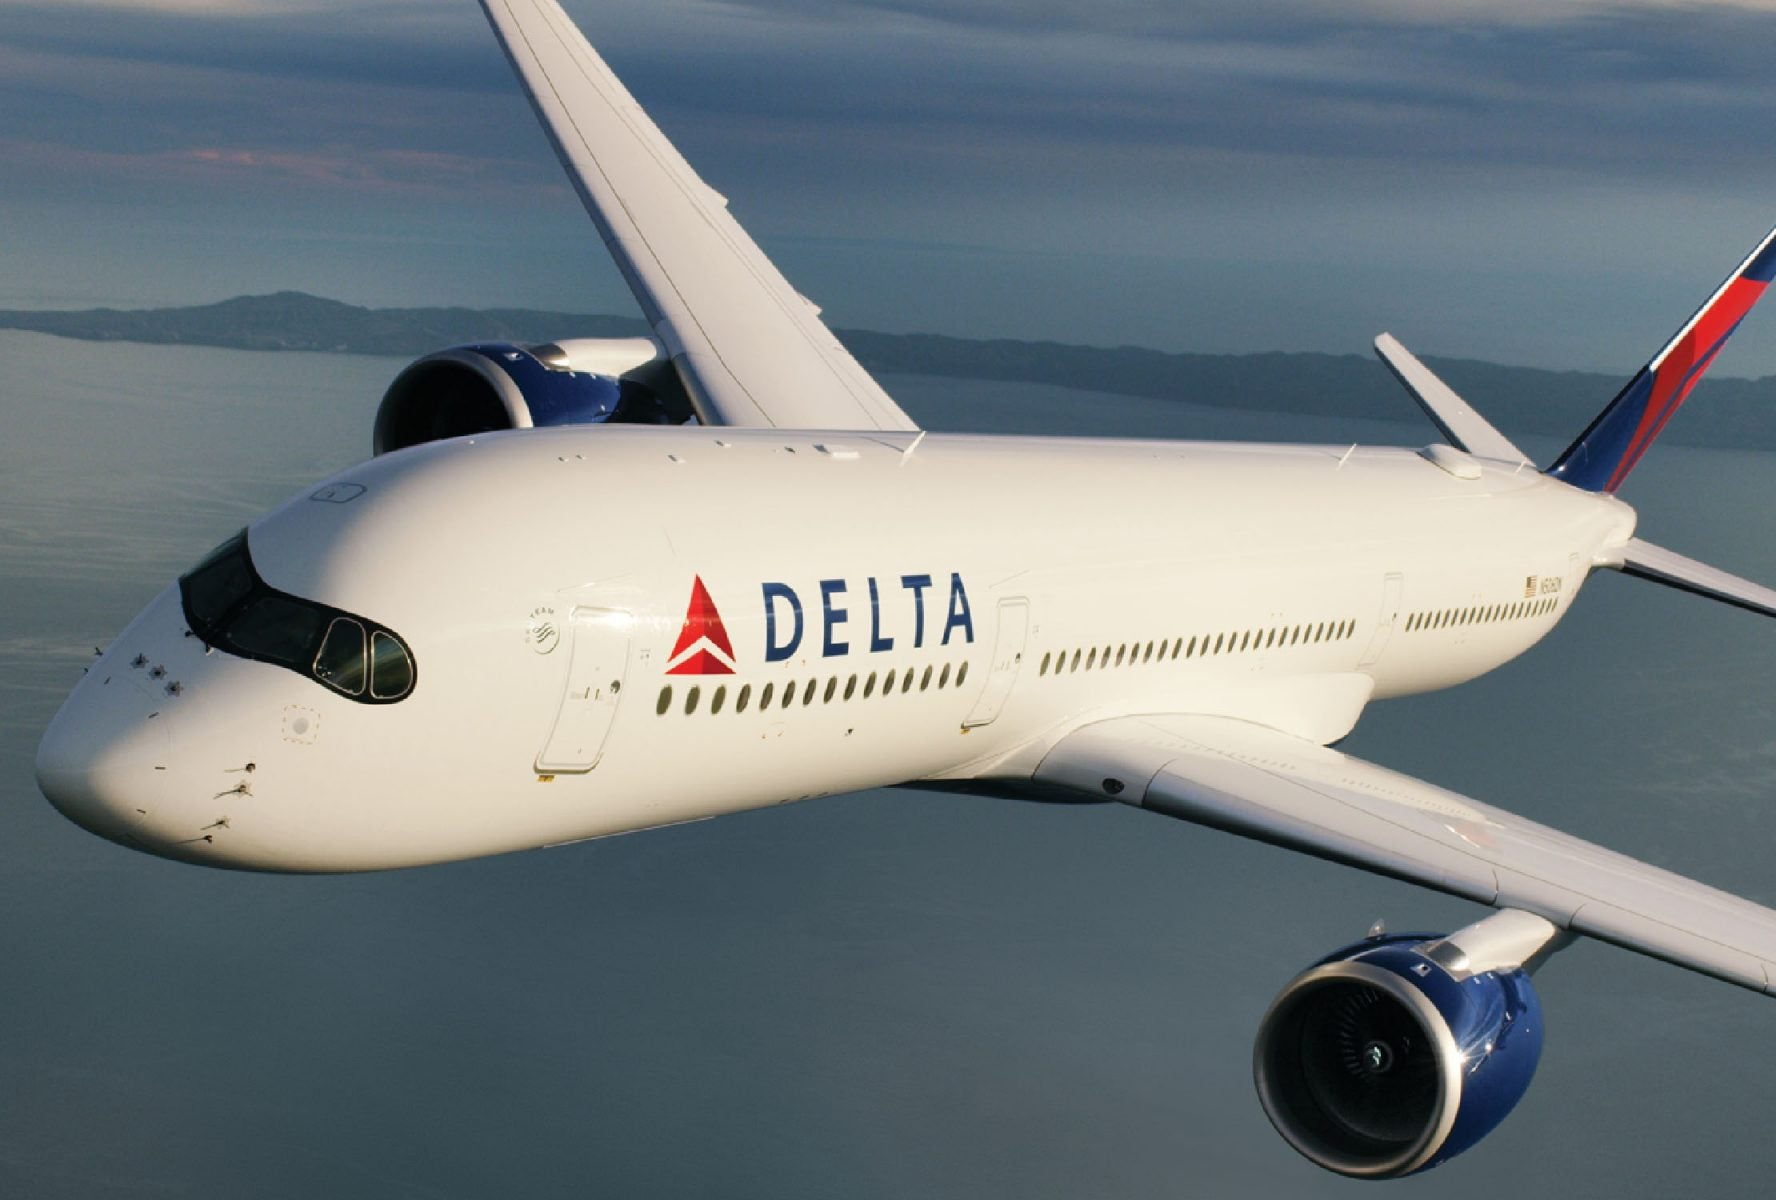 Grab 2,000 Easy Delta Miles for Filling Out a Simple Survey  (Targeted)